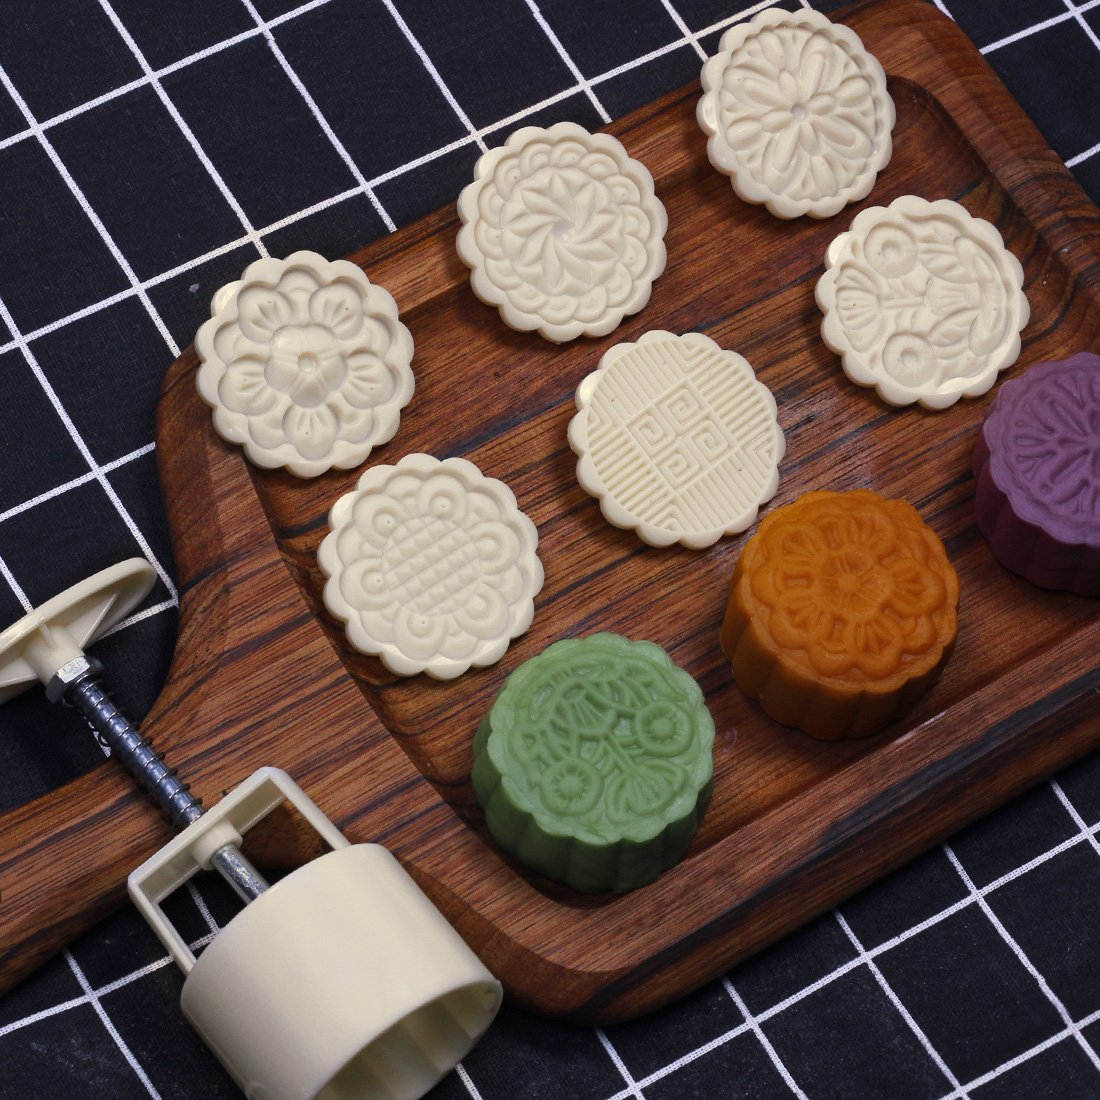 75g Cookie Stamps Moon Cake Mold with 6 Stamps, Cookie Press Mid Autumn Festival DIY Decoration Press Cake Cutter Mold DLT LLC-055